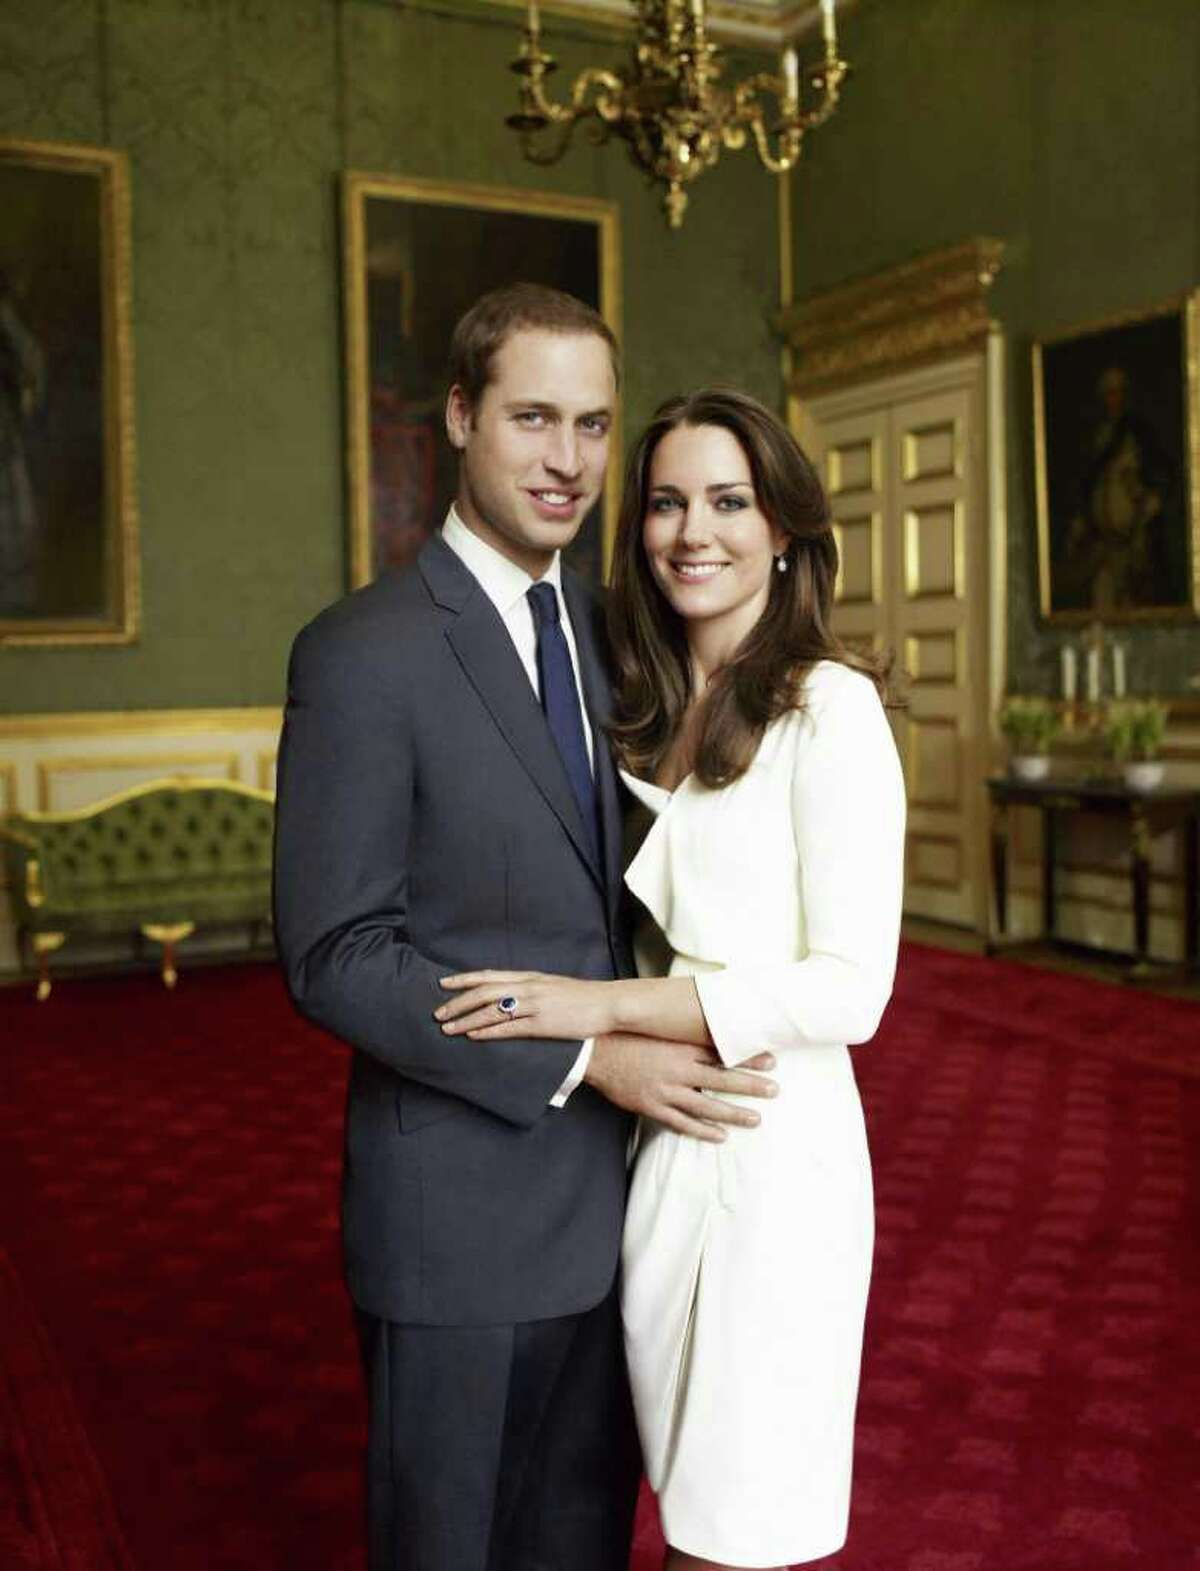 FILE - This is one of two official portrait photographs taken on Nov. 25, 2010 in the Council Chamber in the State Apartment in St James's Palace, London and released by Clarence House Press Office on Sunday Dec. 12, 2010 to mark the engagement of Britain's Prince William, left, and Catherine Middleton, right. Poor Kate Middleton. She's not just marrying a future king. She's marrying all of us. Once upon a time, British subjects gazed upon their sovereigns from afar. Not any more. Members of the royal family are now Hollywood-style mega-celebrities _ their cellulite, receding hairlines and boozy nights out subject to the same relentless scrutiny as other A-listers. The monarchy has gained in star power, and perhaps lost in dignity, since William's mother, Princess Diana, burst into the royal family in a blonde blaze of charisma and changed it forever. (AP Photo/Clarence House Press Office/Copyright 2010 Mario Testino, ho). MANDATORY CREDIT, NO SALES , EDITORIAL USE ONLY, NOT APPROVED FOR SOUVENIRS AND MEMORABILIA. THE PHOTOGRAPHS MUST NOT BE DIGITALLY ENHANCED, MANIPULATED OR MODIFIED AND MUST BE USED IN THEIR ENTIRETY